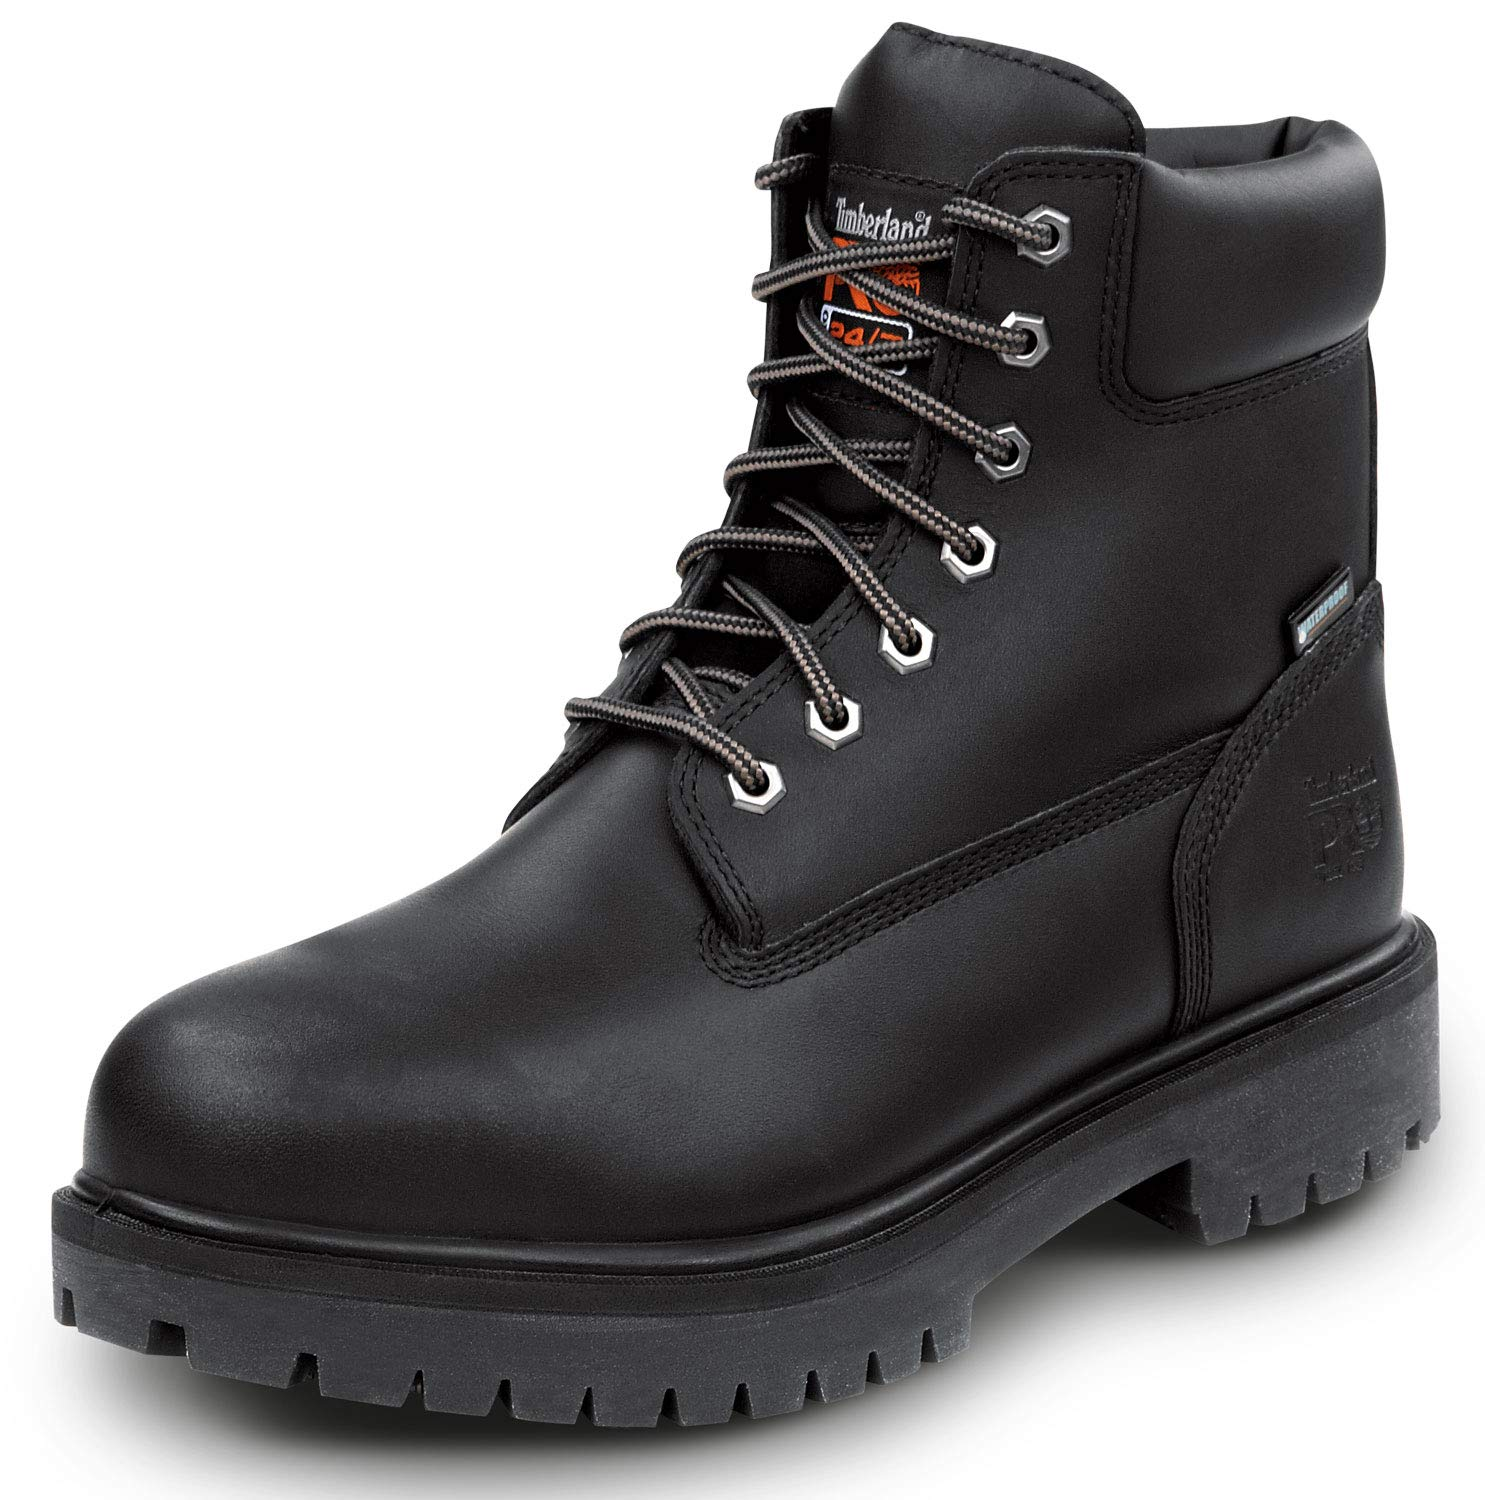 Timberland PRO 6IN Direct Attach Men's Steel Toe Boot (12.0 M) Black by Timberland PRO